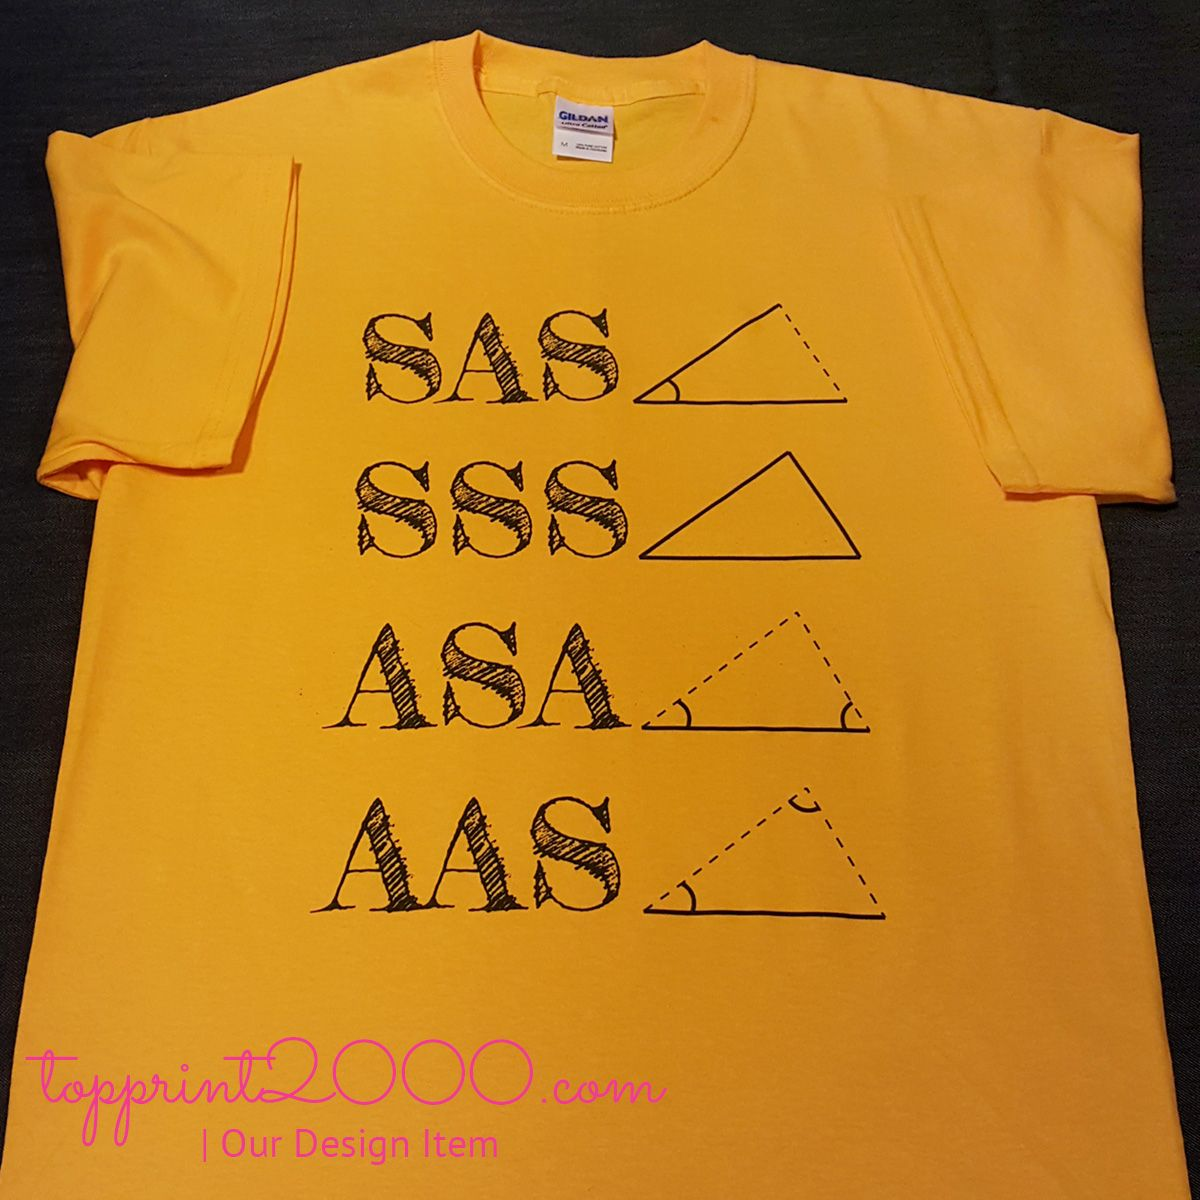 Congruent Triangles Is That Simple Sas Sss Asa Aas